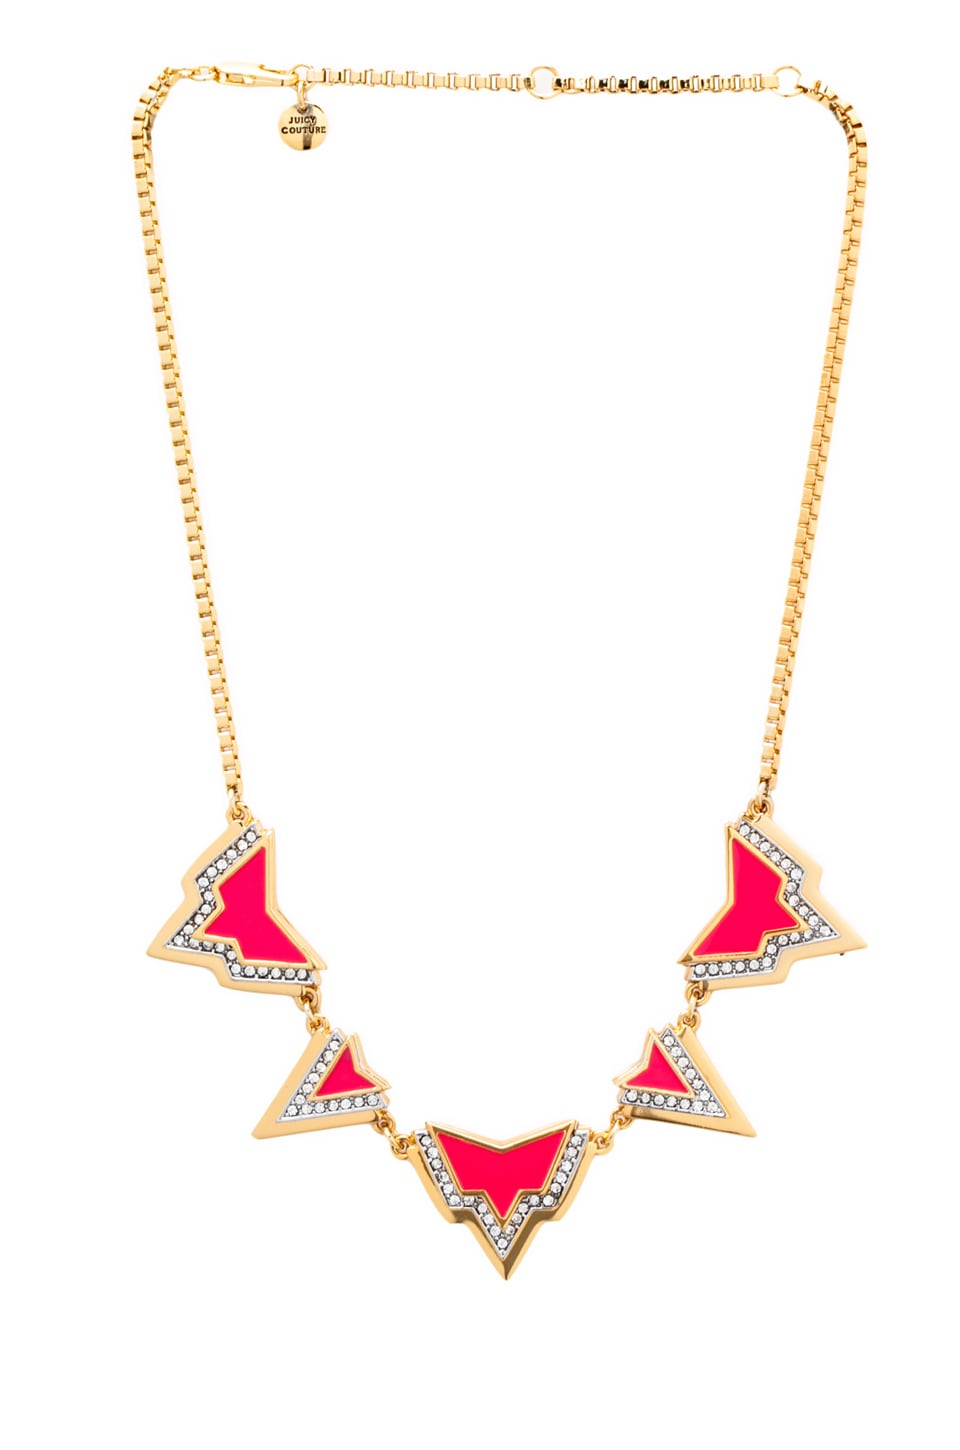 Juicy Couture Deco'd Out Angular Spike Necklace in Hot Pink